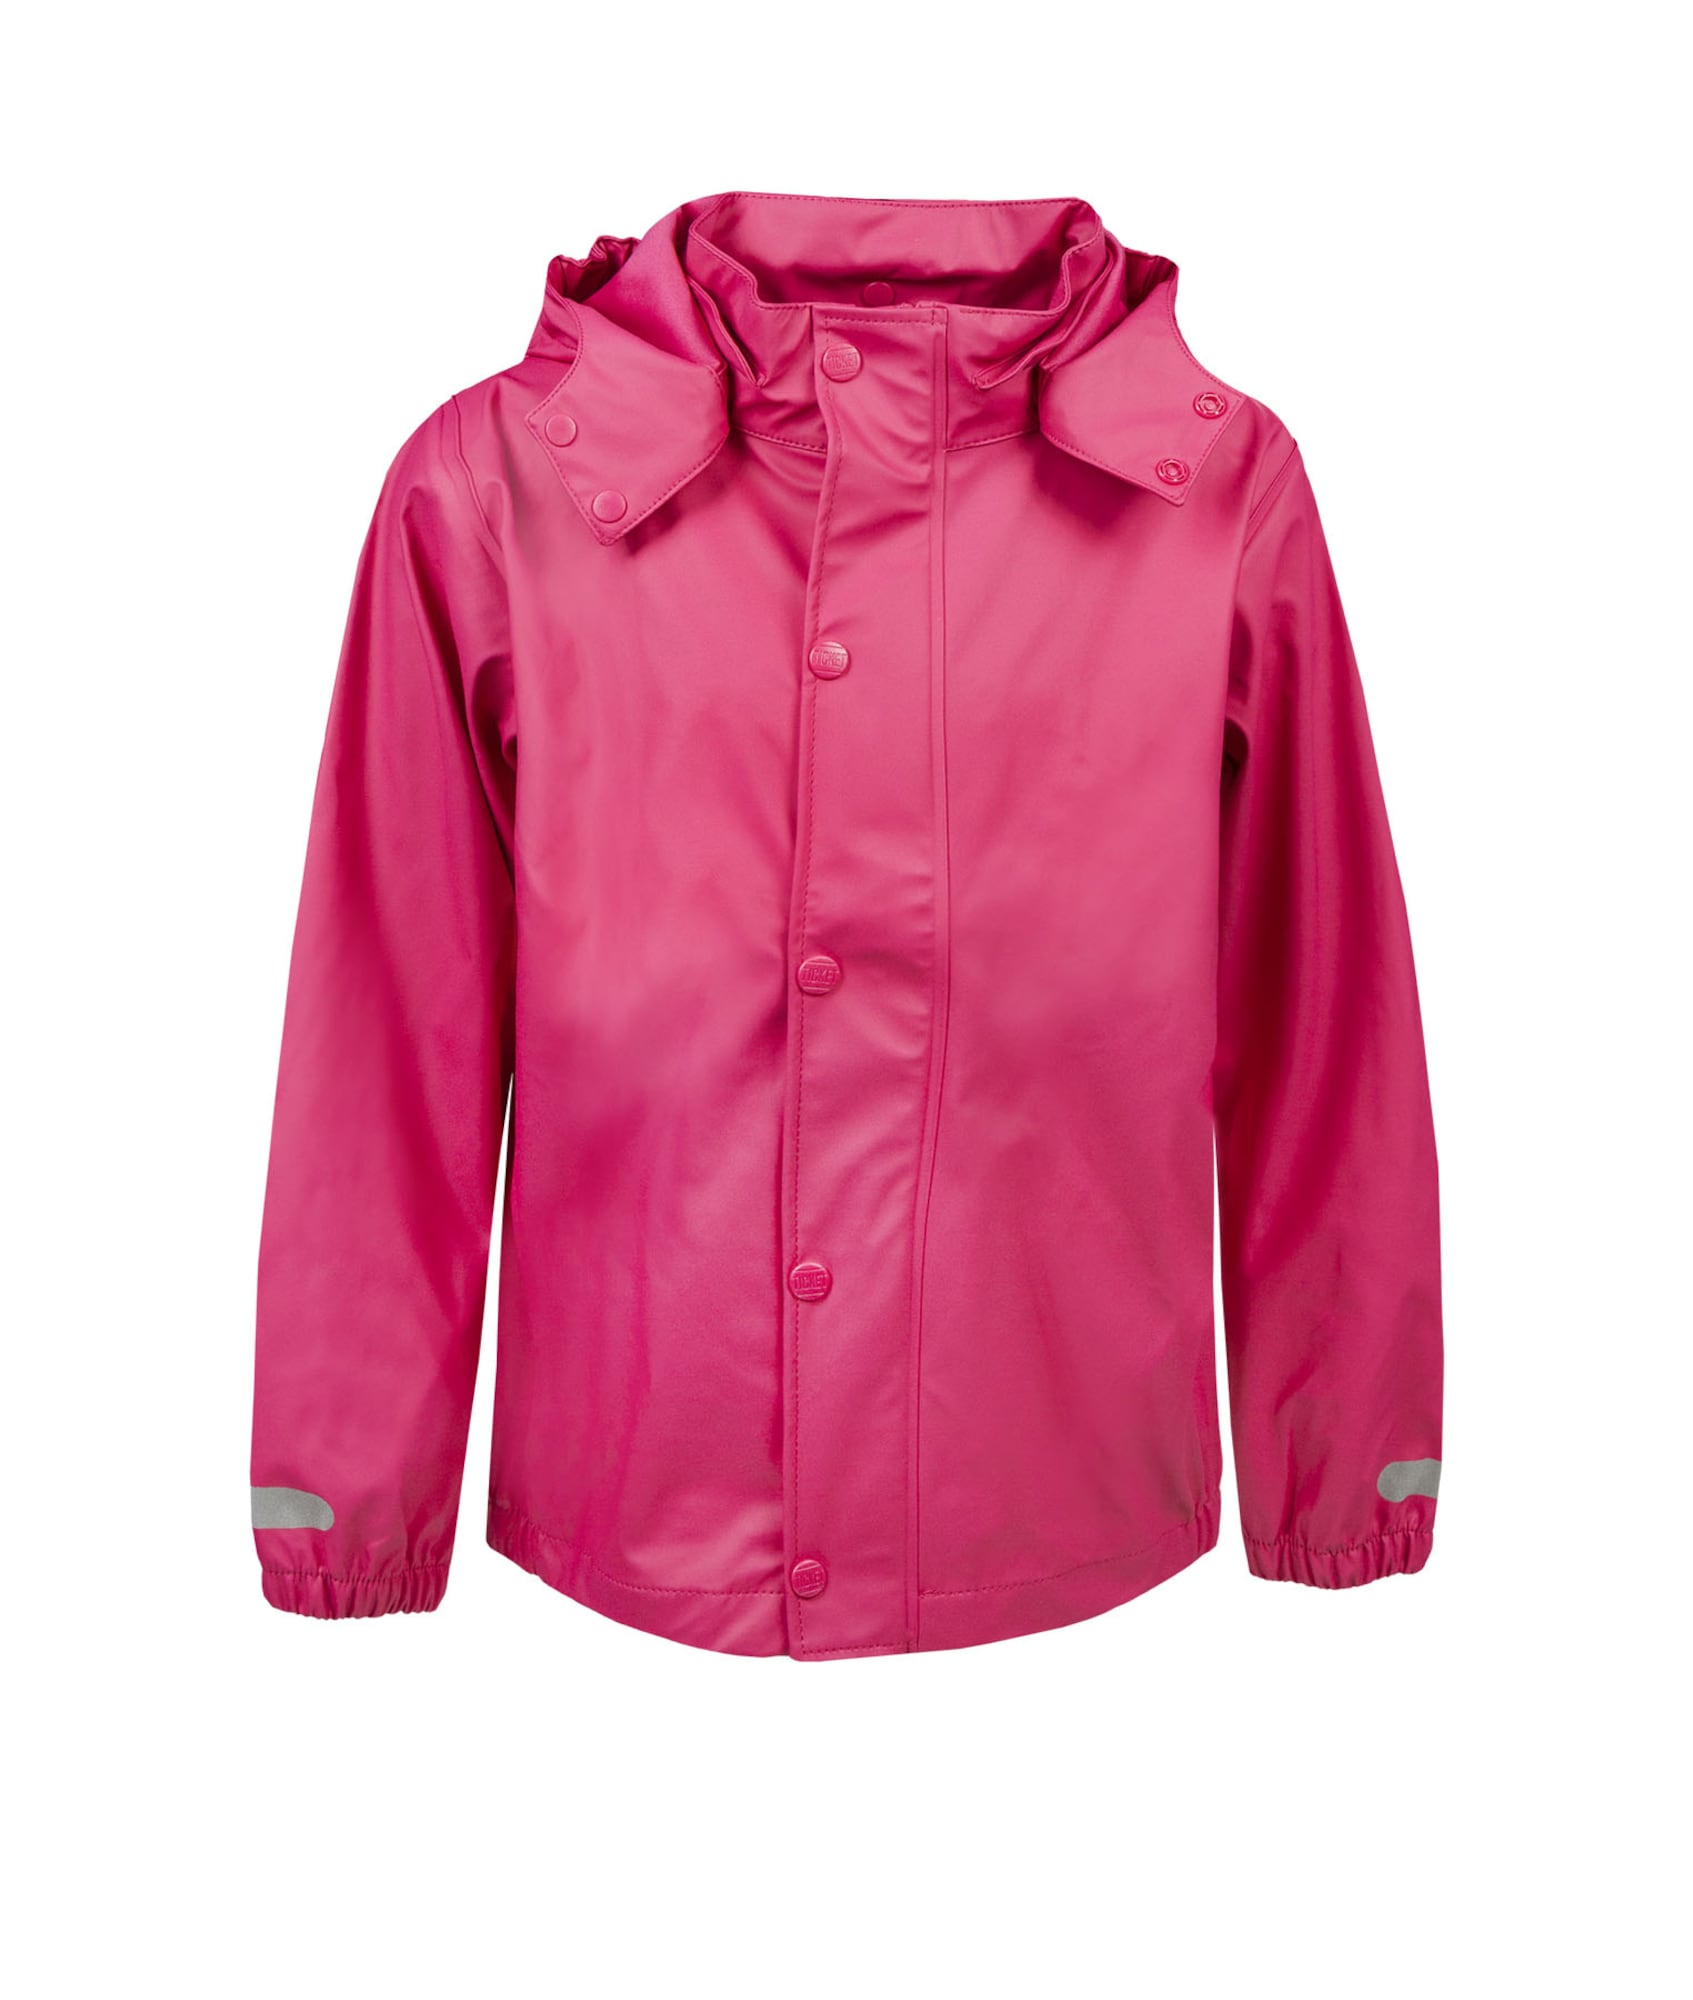 Regenjacke Authentic für fKinder